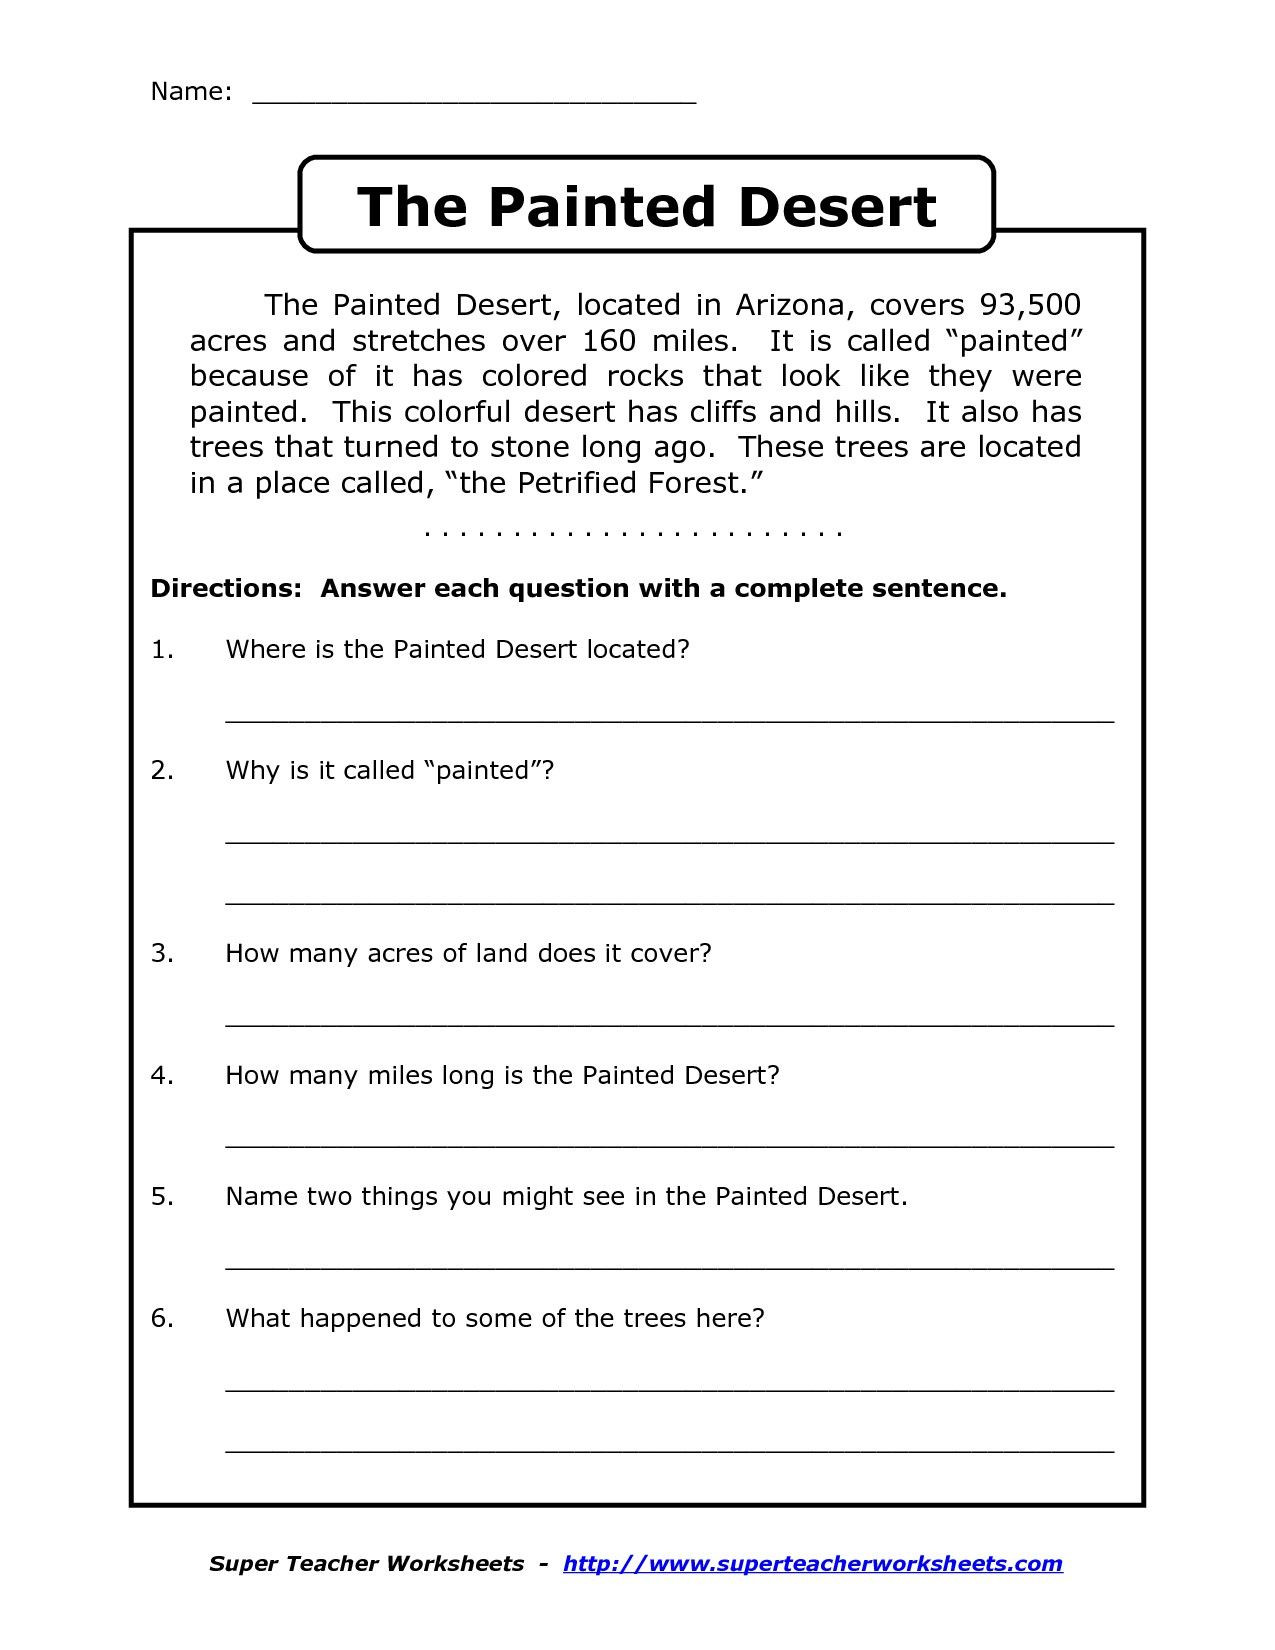 Editing Worksheets 4th Grade Prehension Worksheet for 1st Grade Y2 P3 the Painted